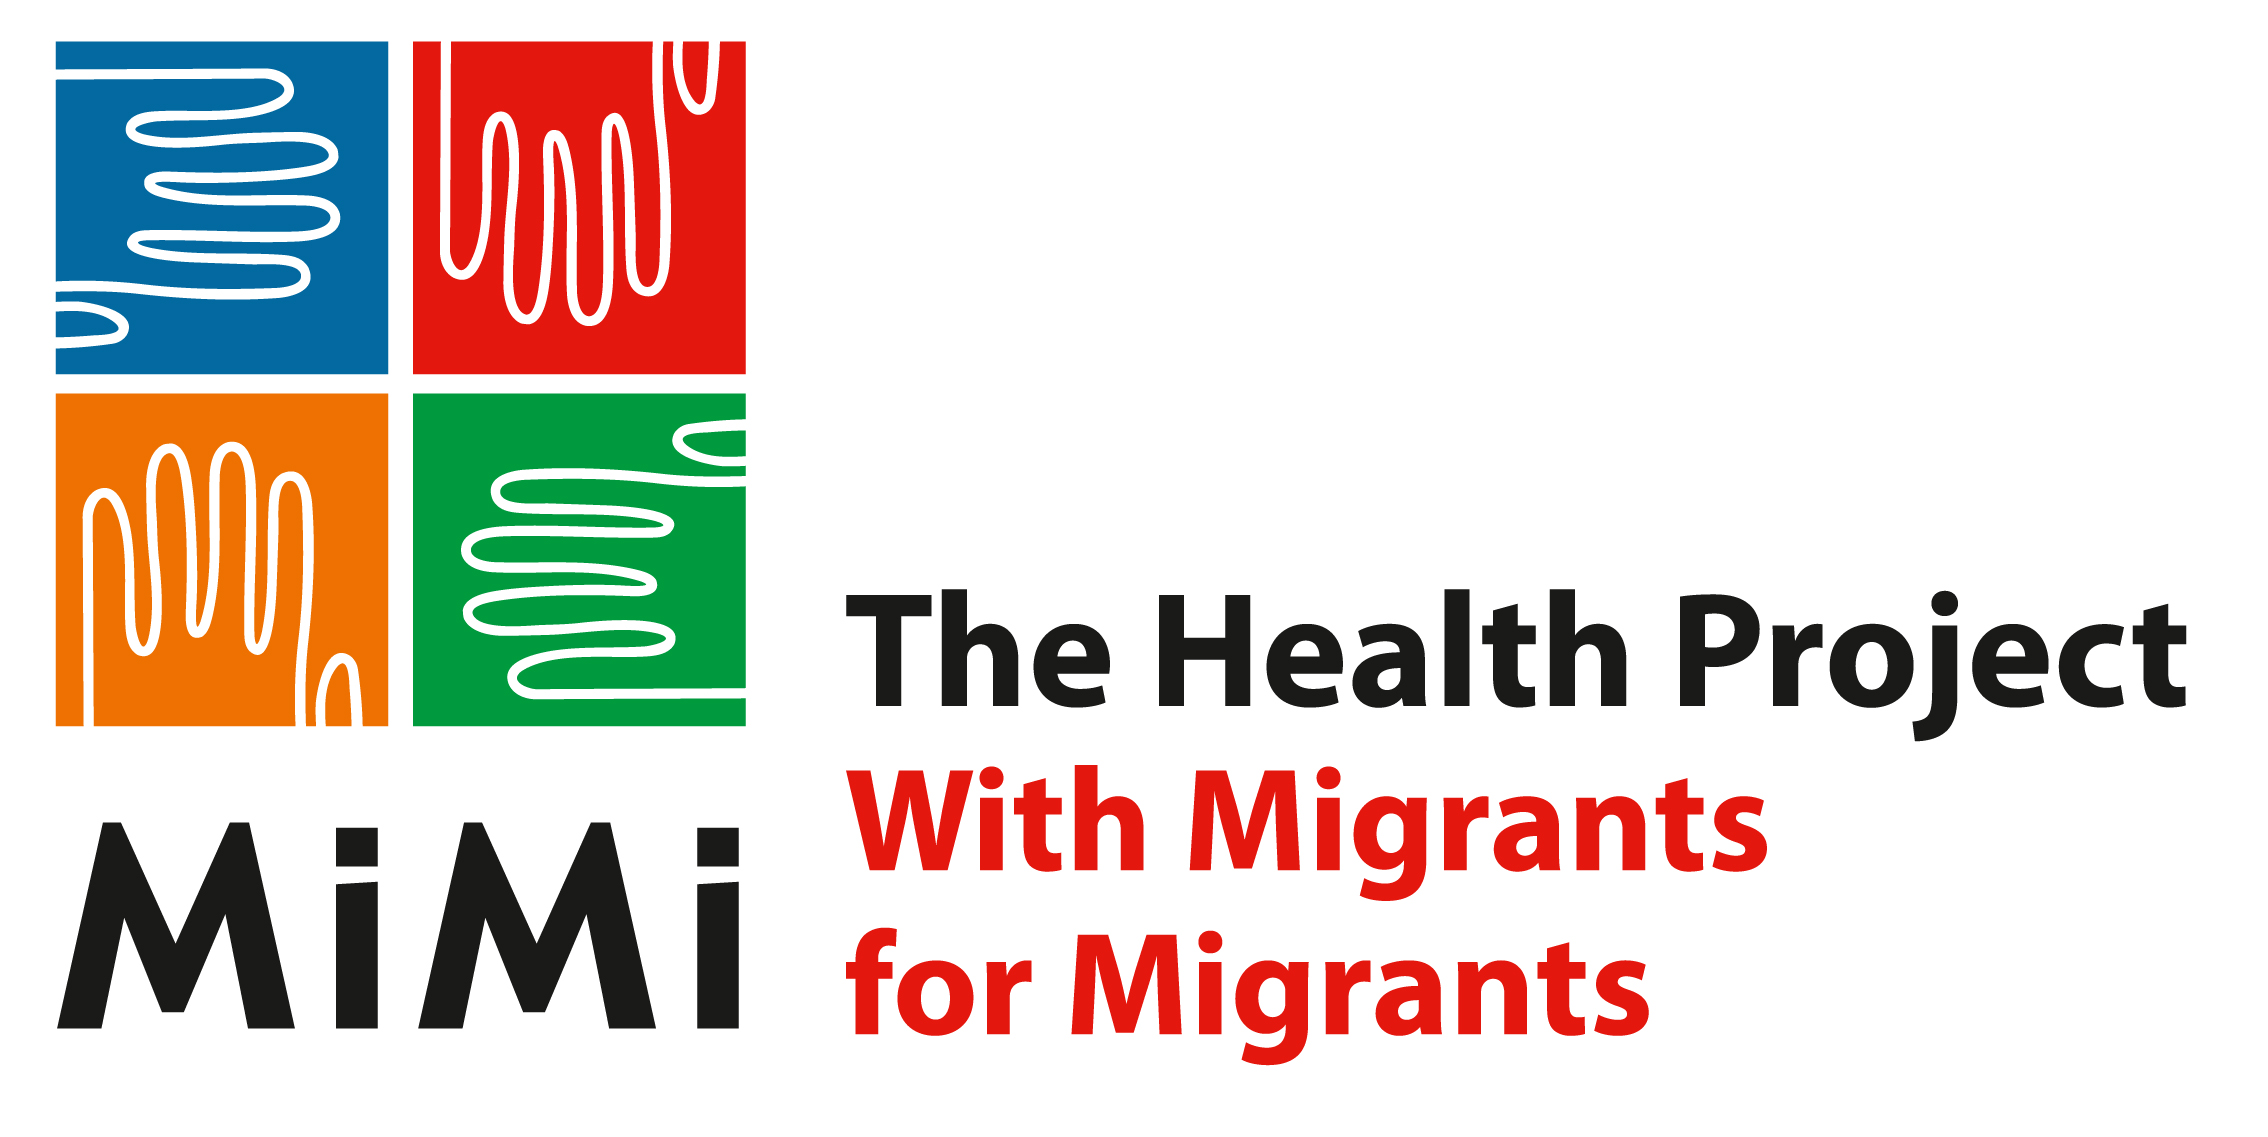 Logo MiMi - The Health Project with Migrants for Migrants